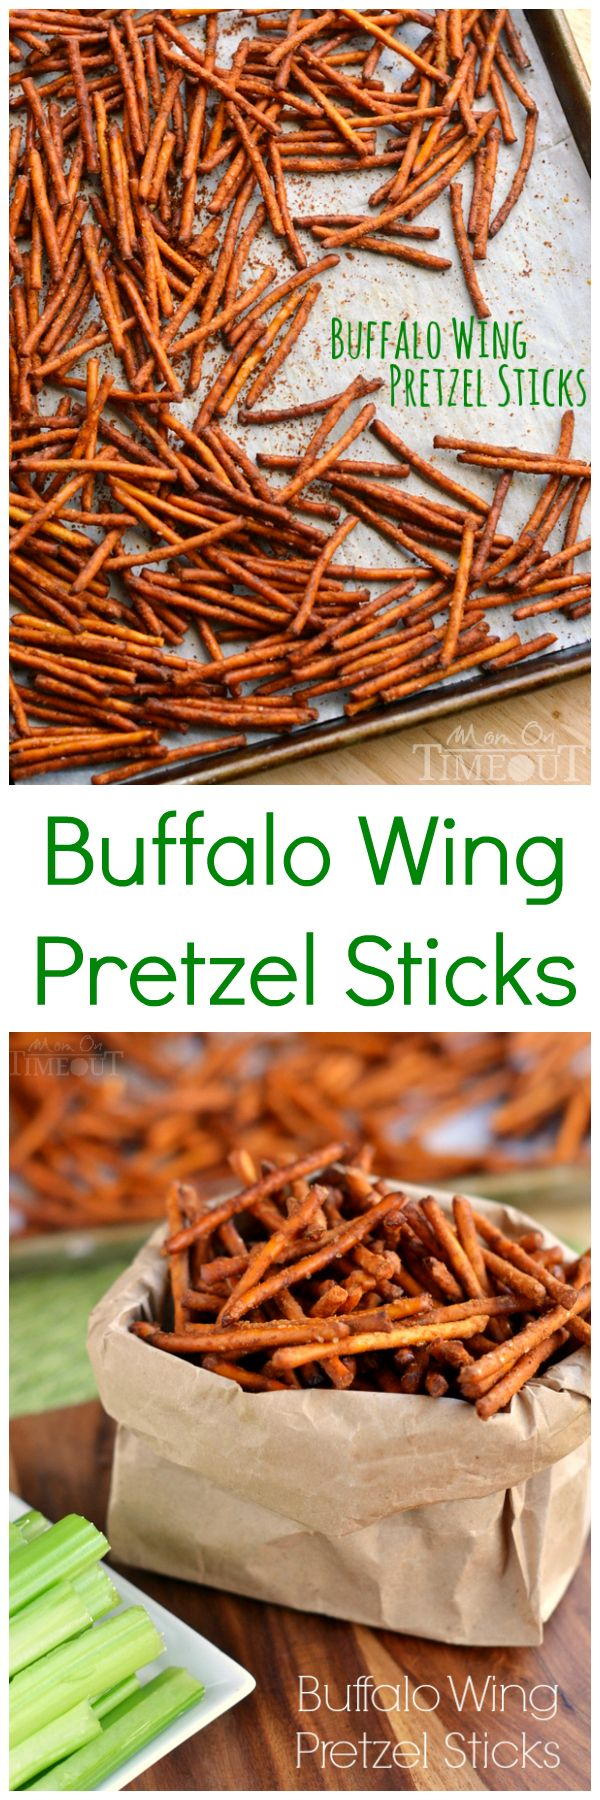 These Buffalo Wing Pretzel Sticks are the perfect snack to enjoy while watching the game! | MomOnTimeout.com